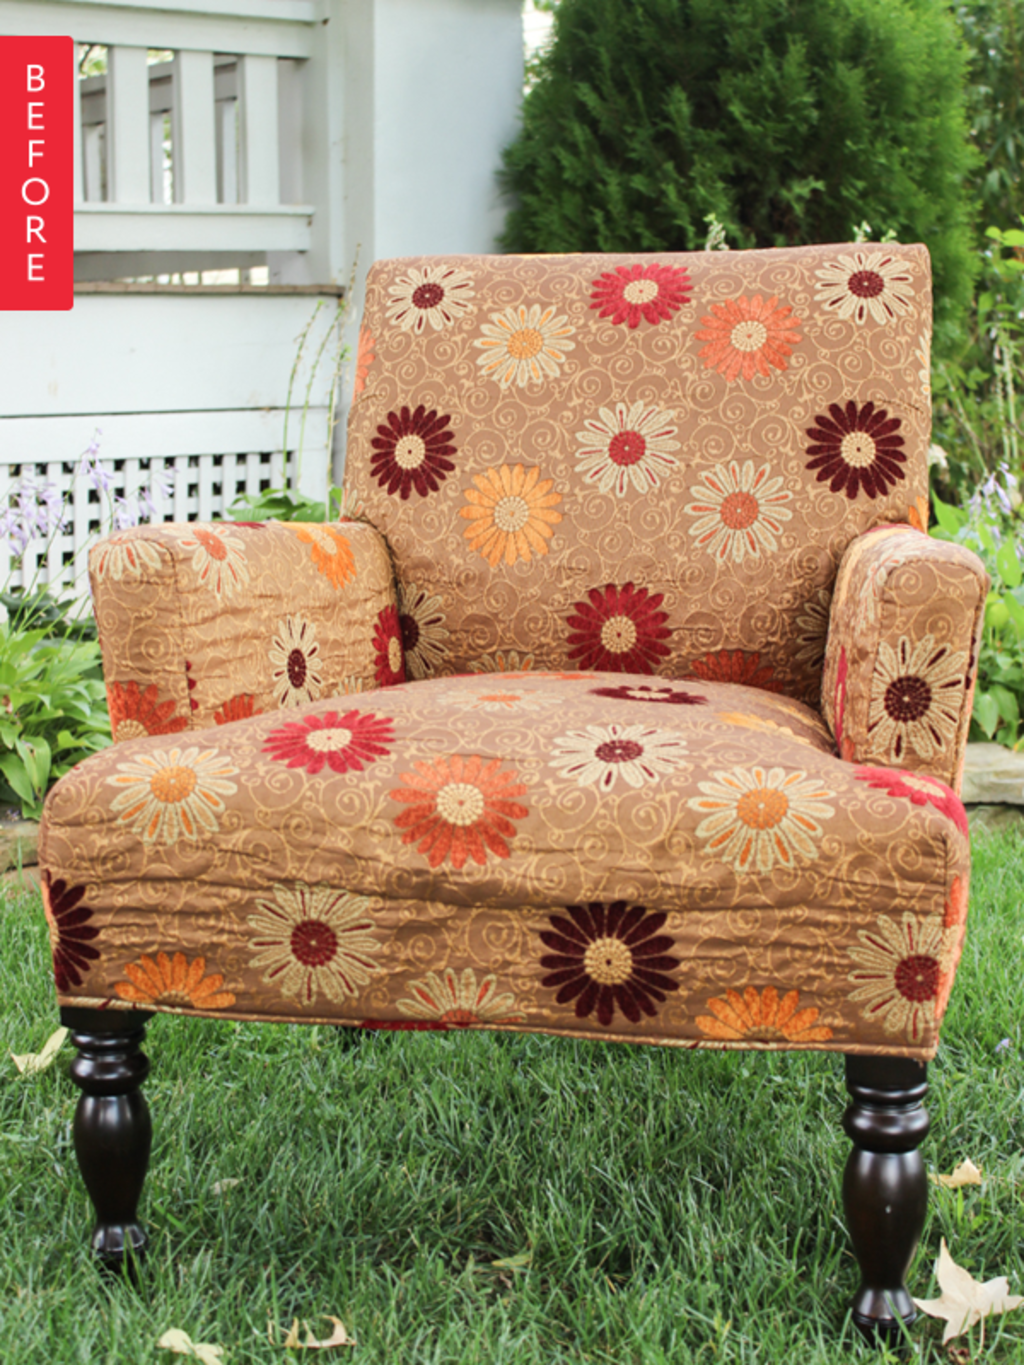 Before & After: Upholstered Chair Gets Pottery Barn-Inspired Makeover